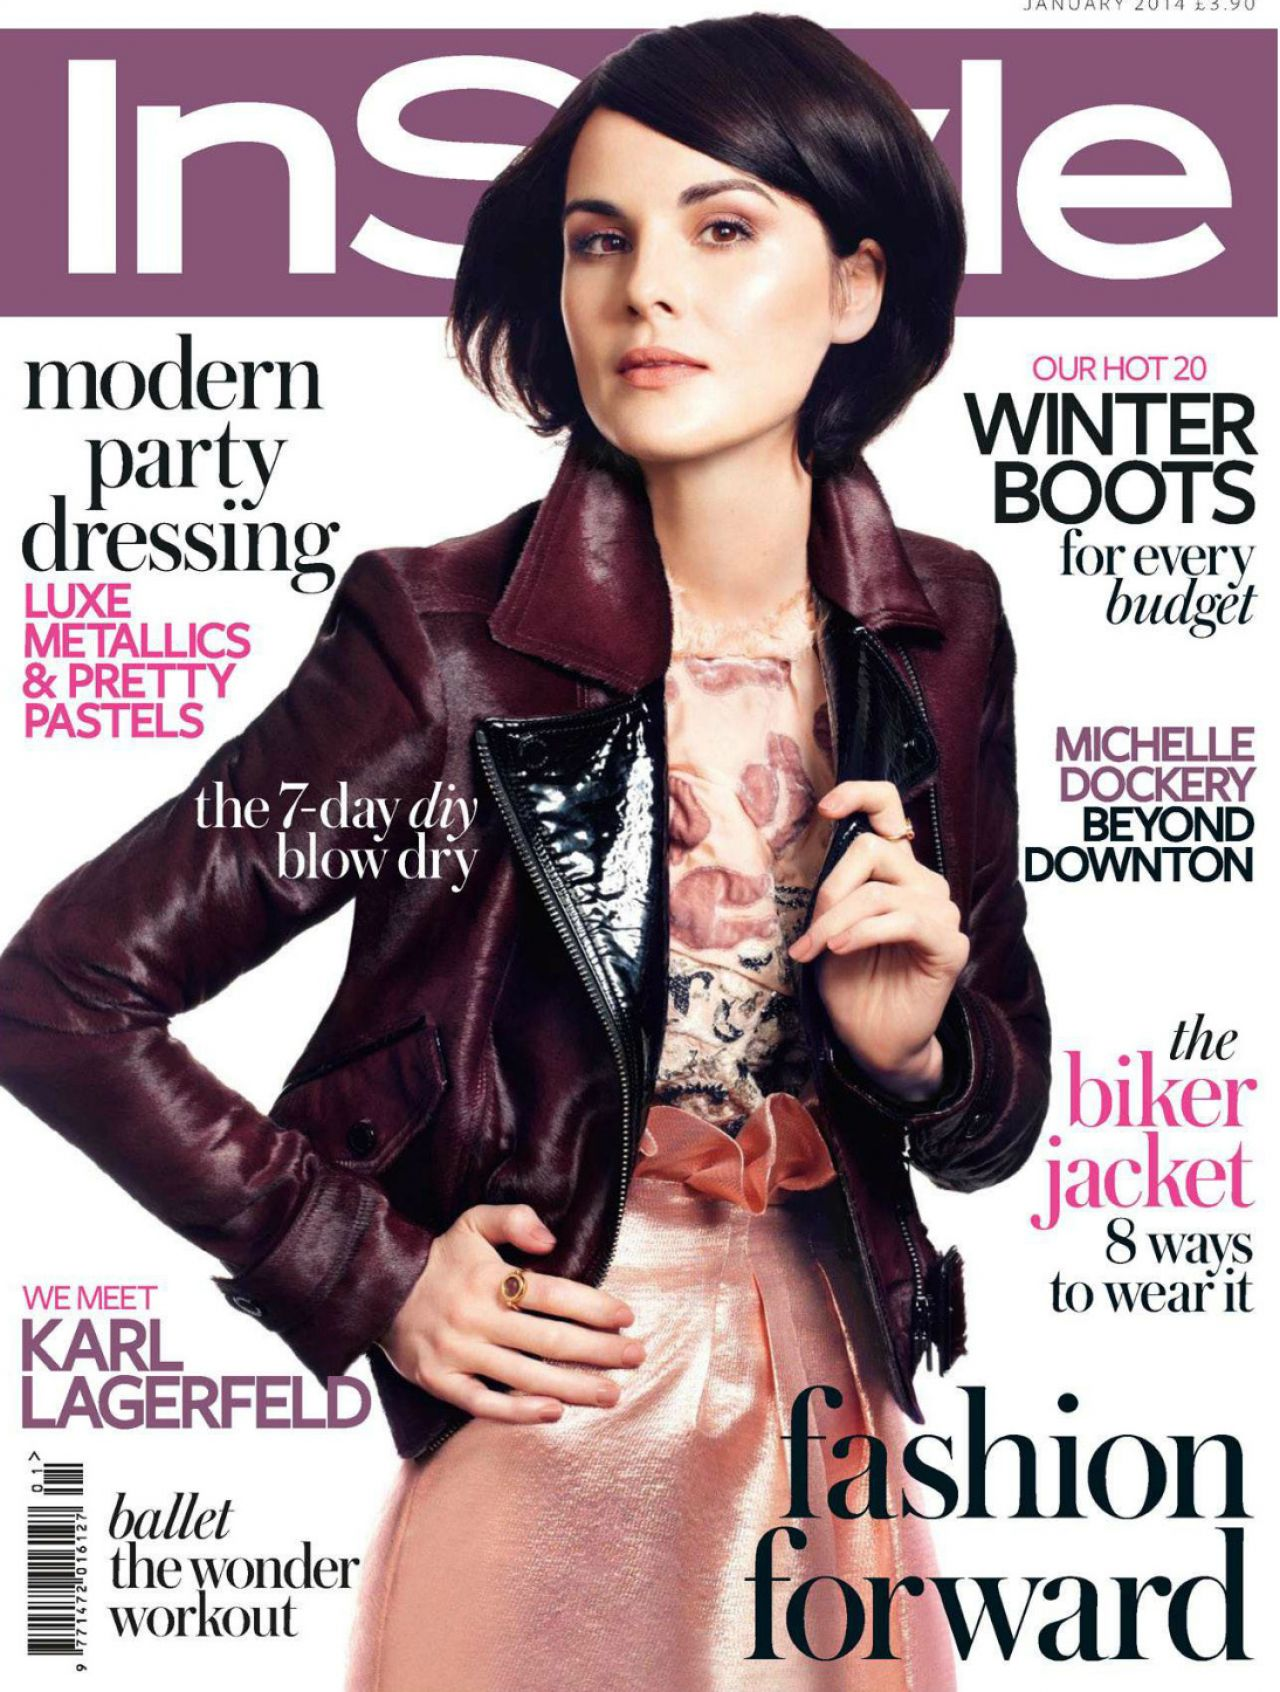 Instyle Magazine Us: InStyle Magazine (UK) January 2014 Issue